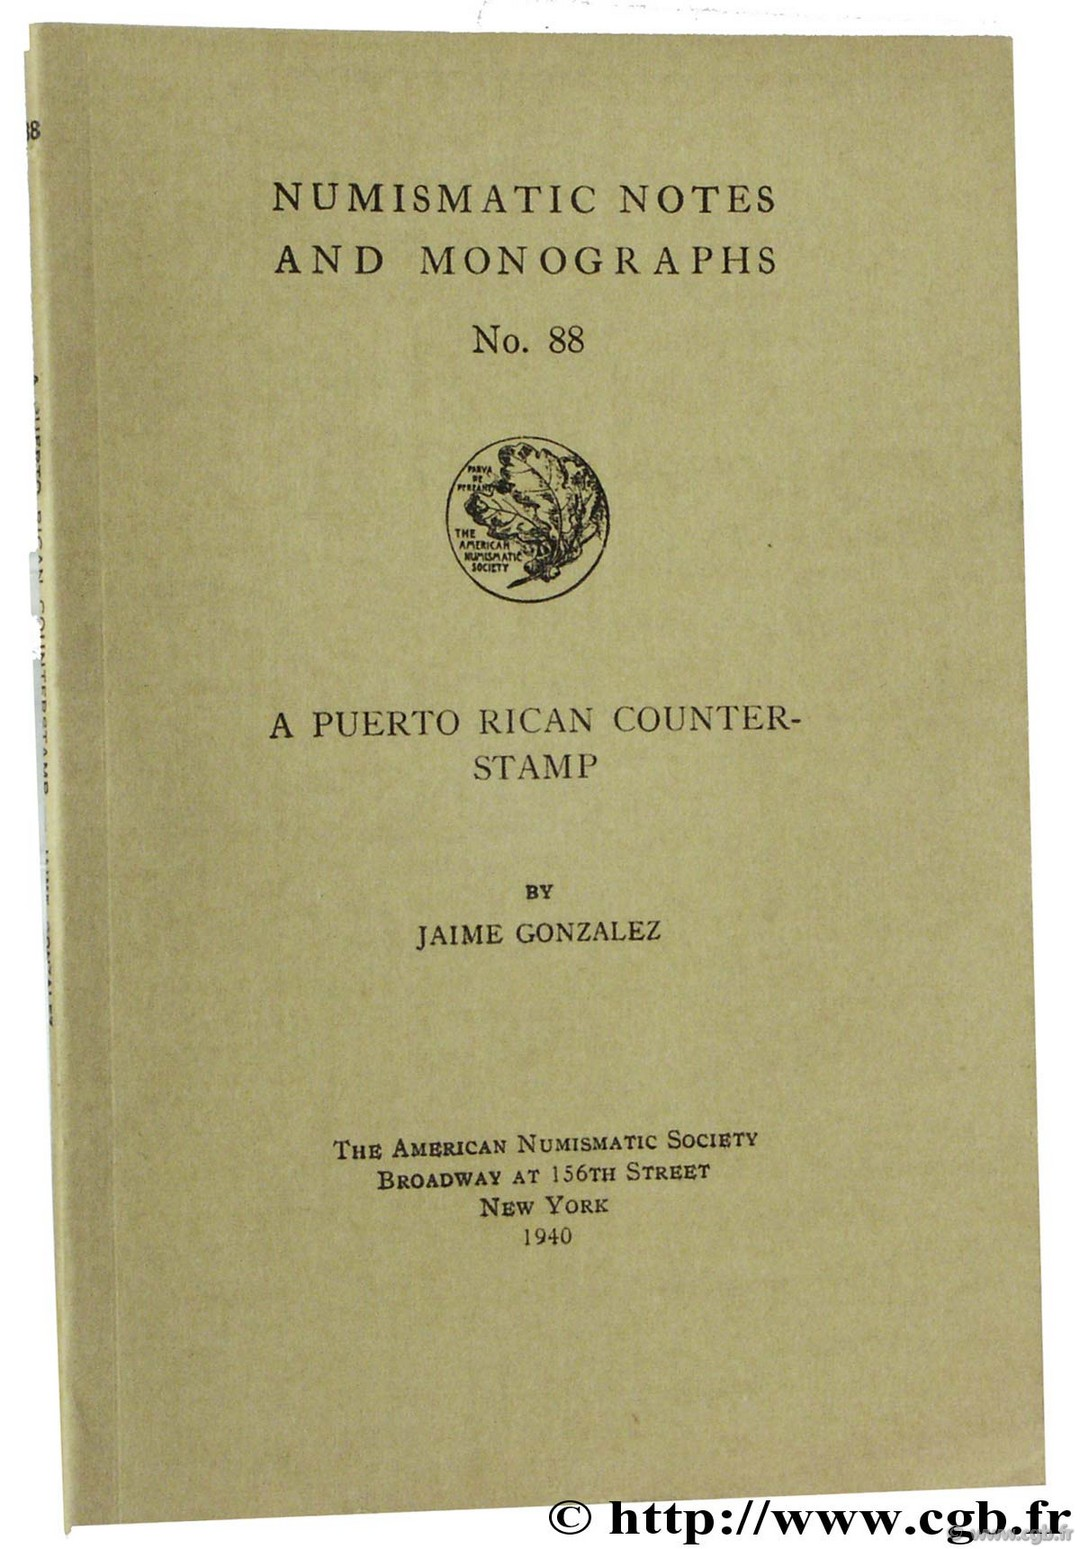 A Puerto Rican Counterstamp, The American Numismatic Society GONZALEZ J.